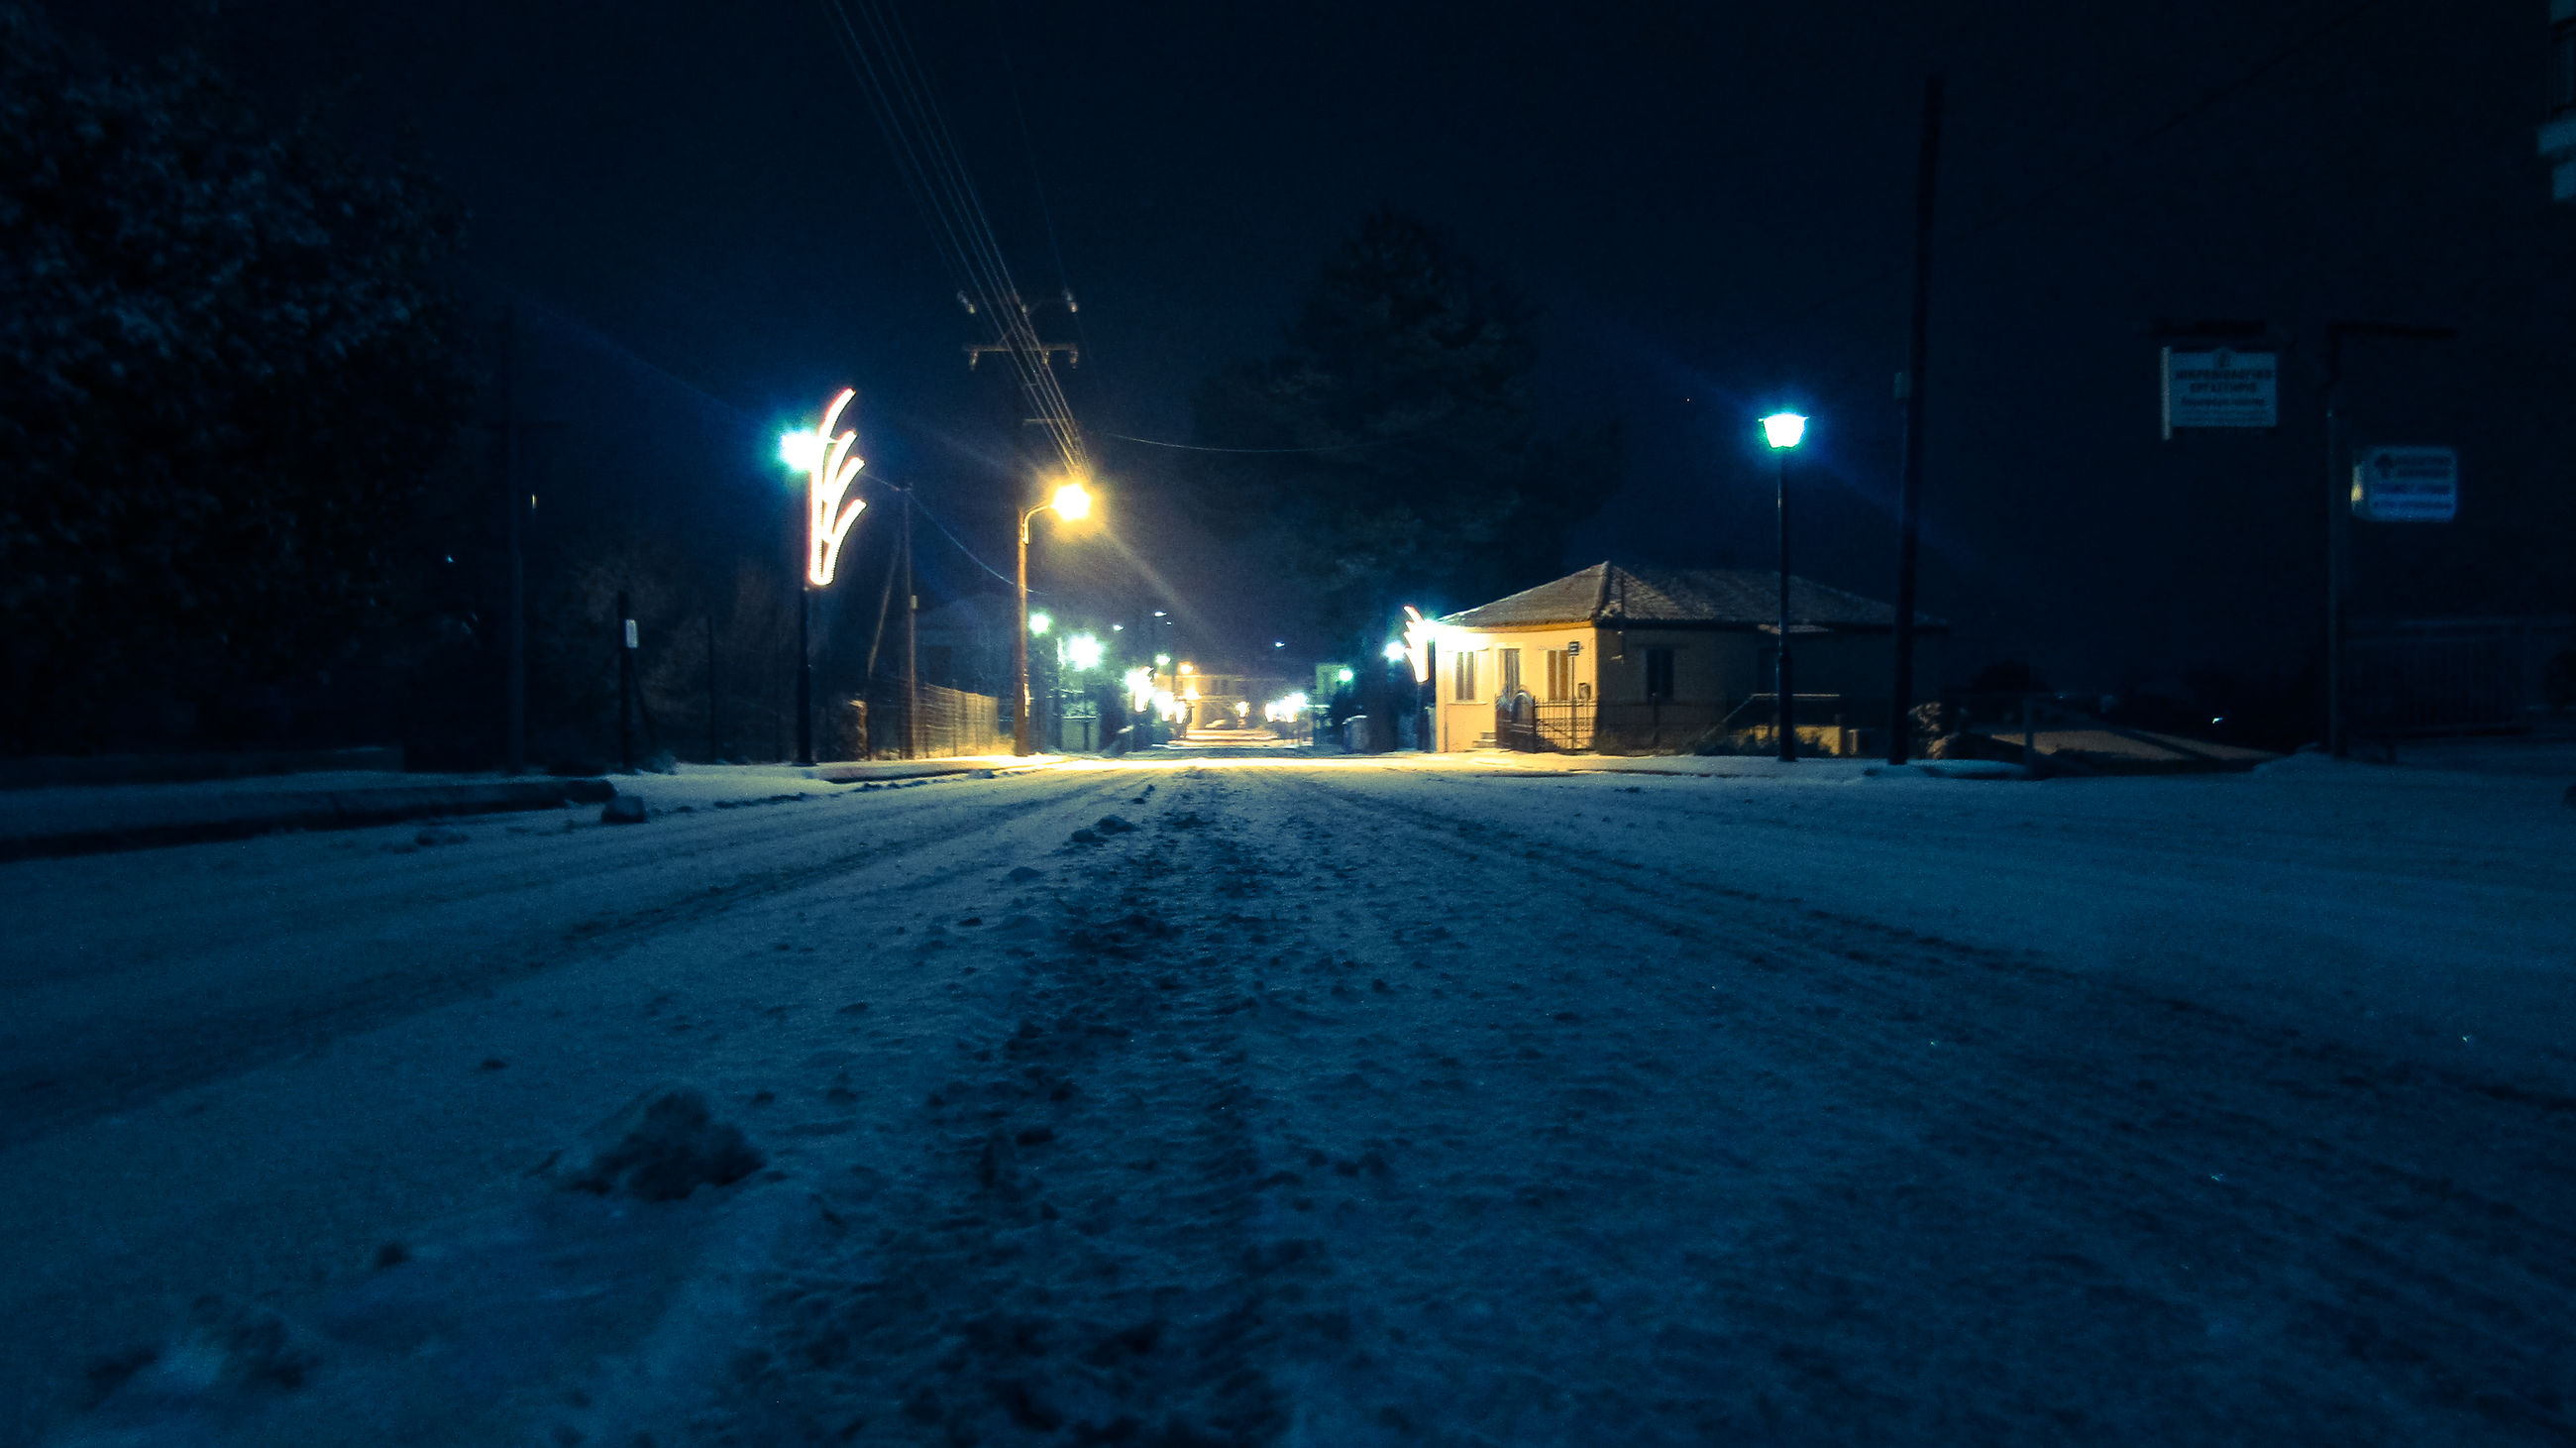 night, snow, winter, illuminated, street light, outdoors, cold temperature, building exterior, no people, road, architecture, sky, nature